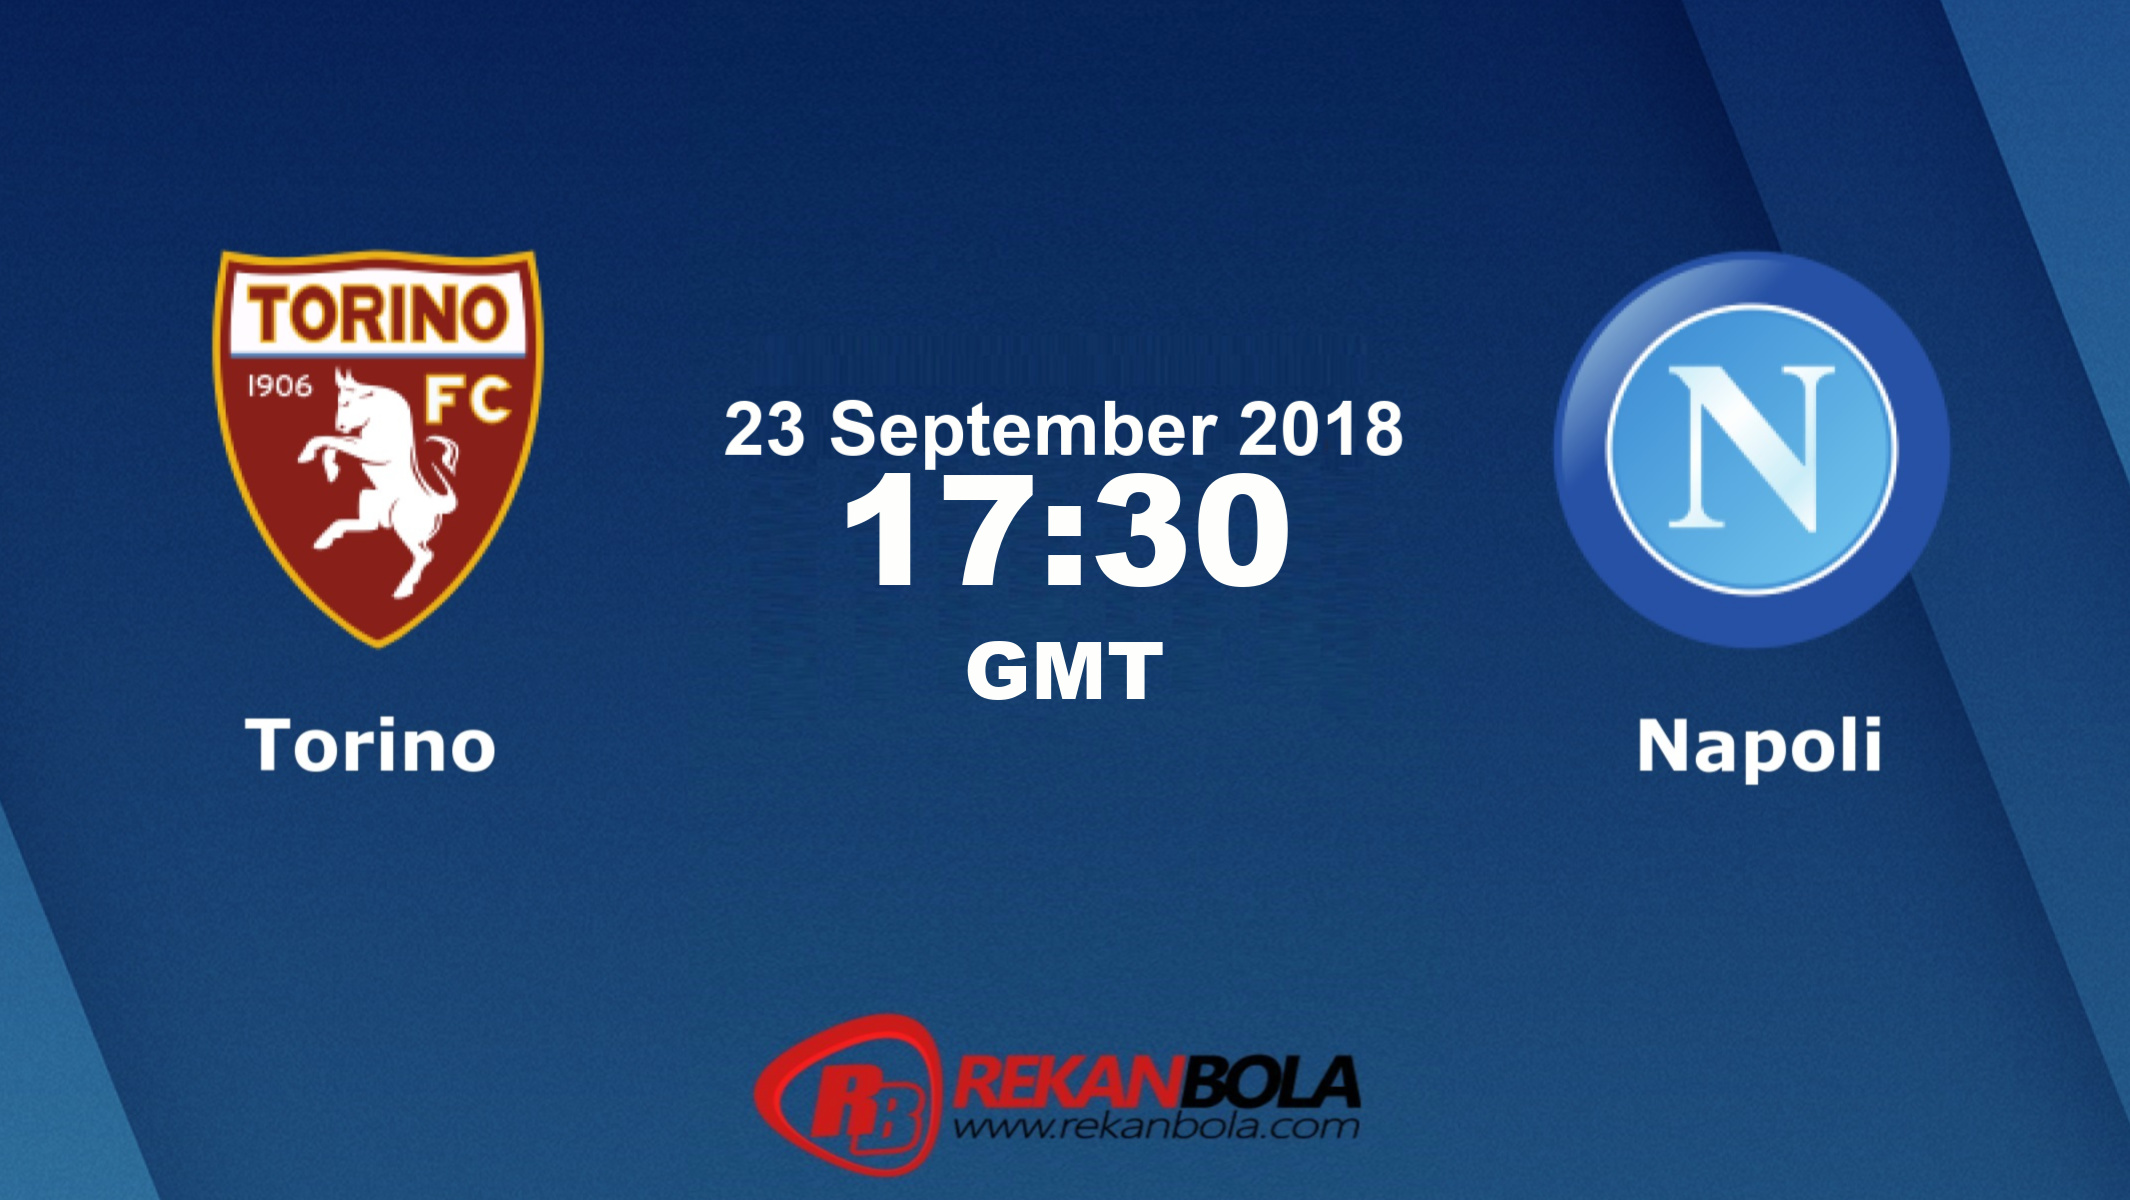 Nonton Siaran Live Streaming Torino Vs Napoli 23 September 2018